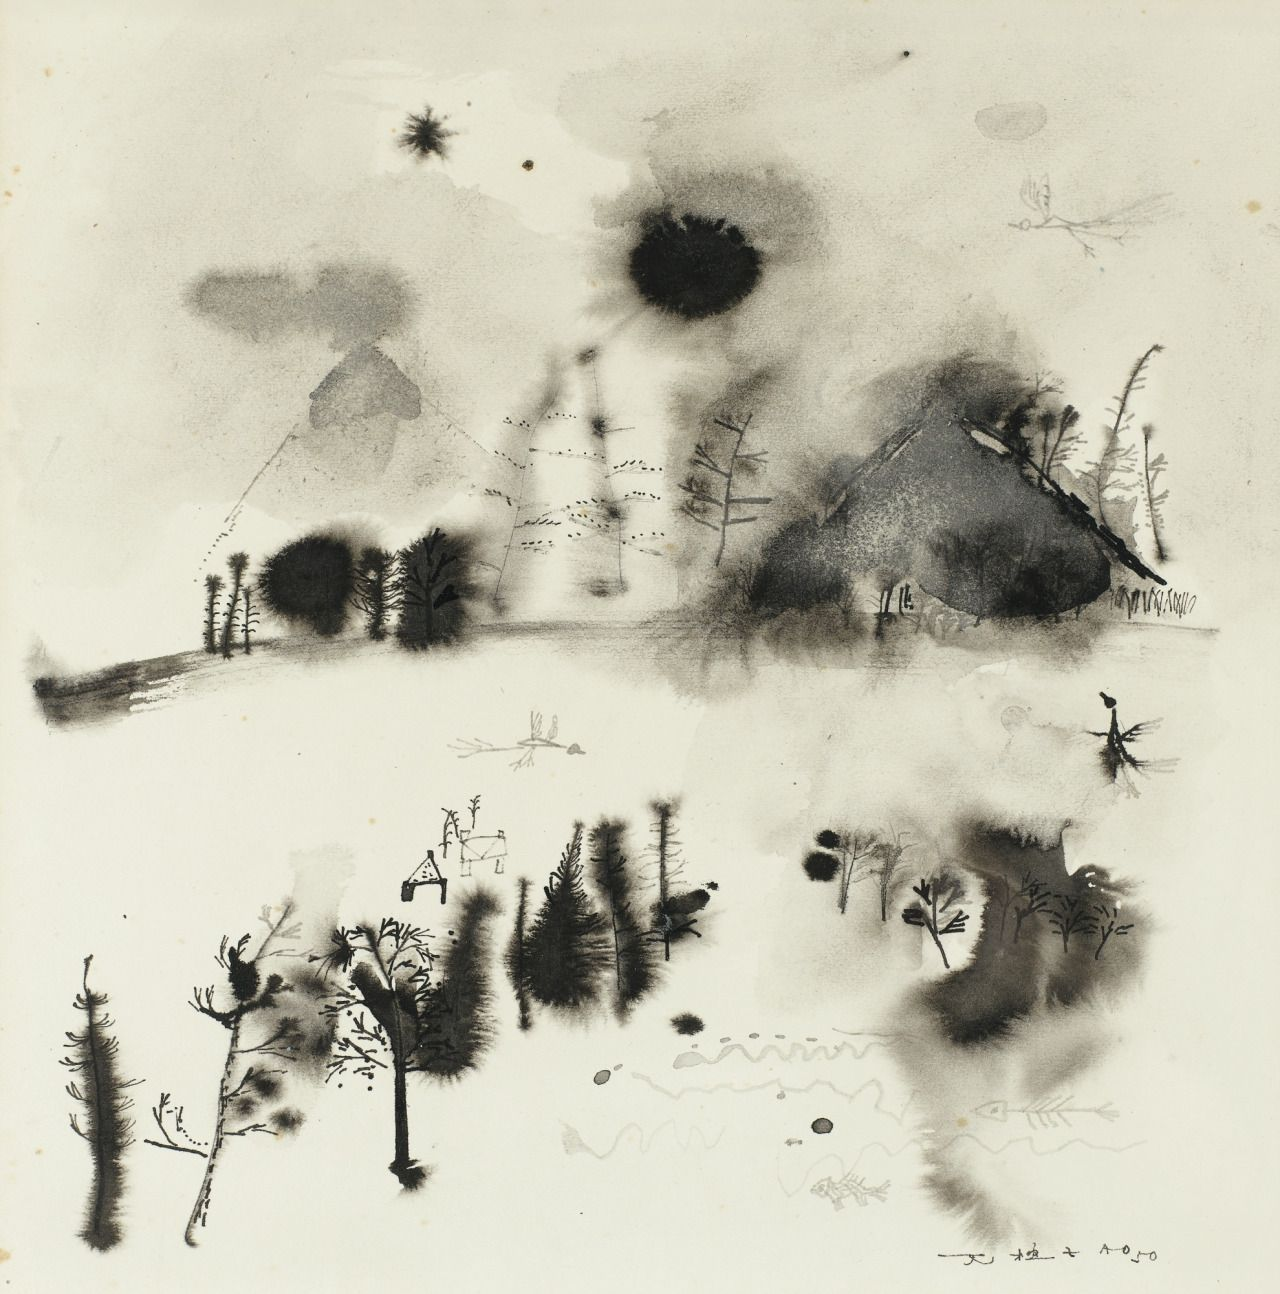 thunderstruck9:  Zao Wou-Ki (Chinese-French, 1920-2013), Sans titre, 1950. Indian ink and wash on japan paper, 34 x 34 cm.